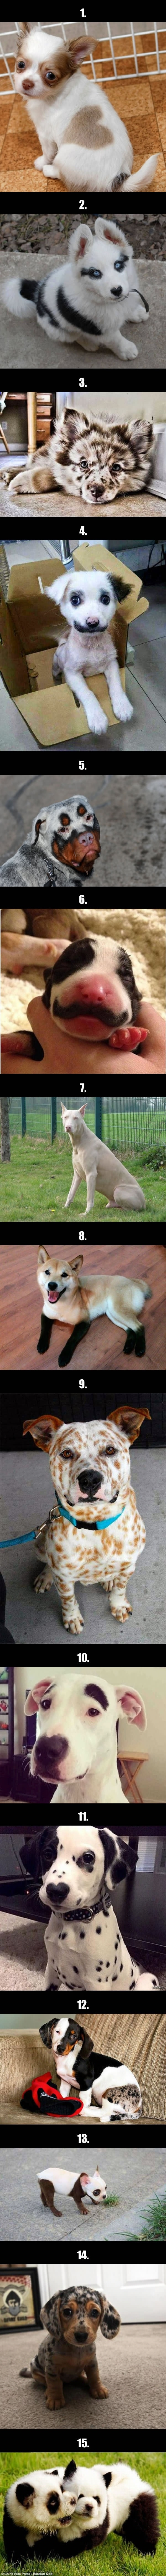 Dogs with strange coloured fur